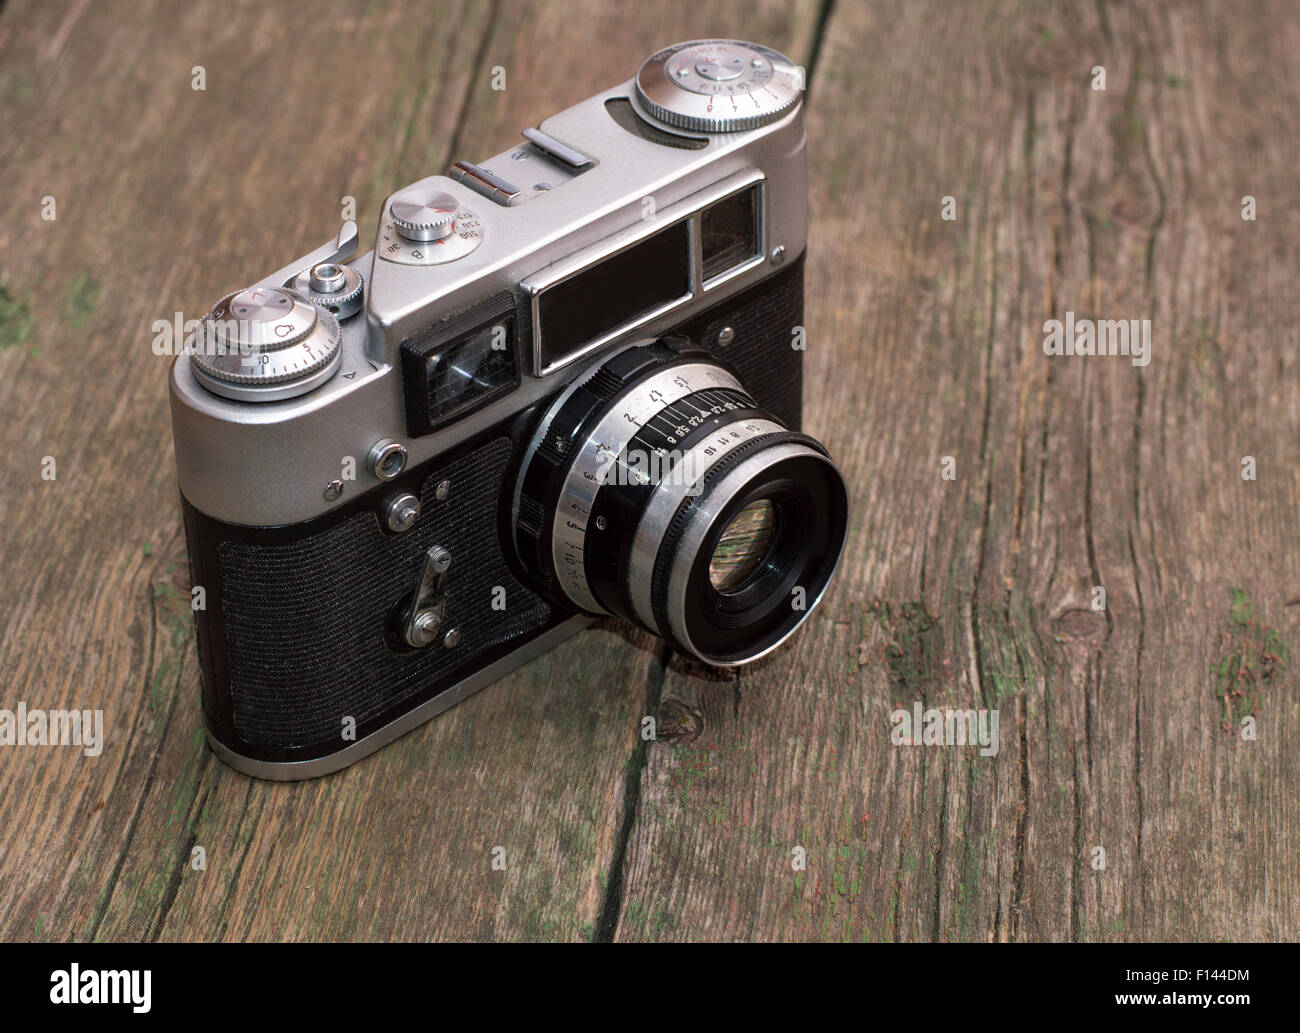 retro the camera on an old wooden table - Stock Image